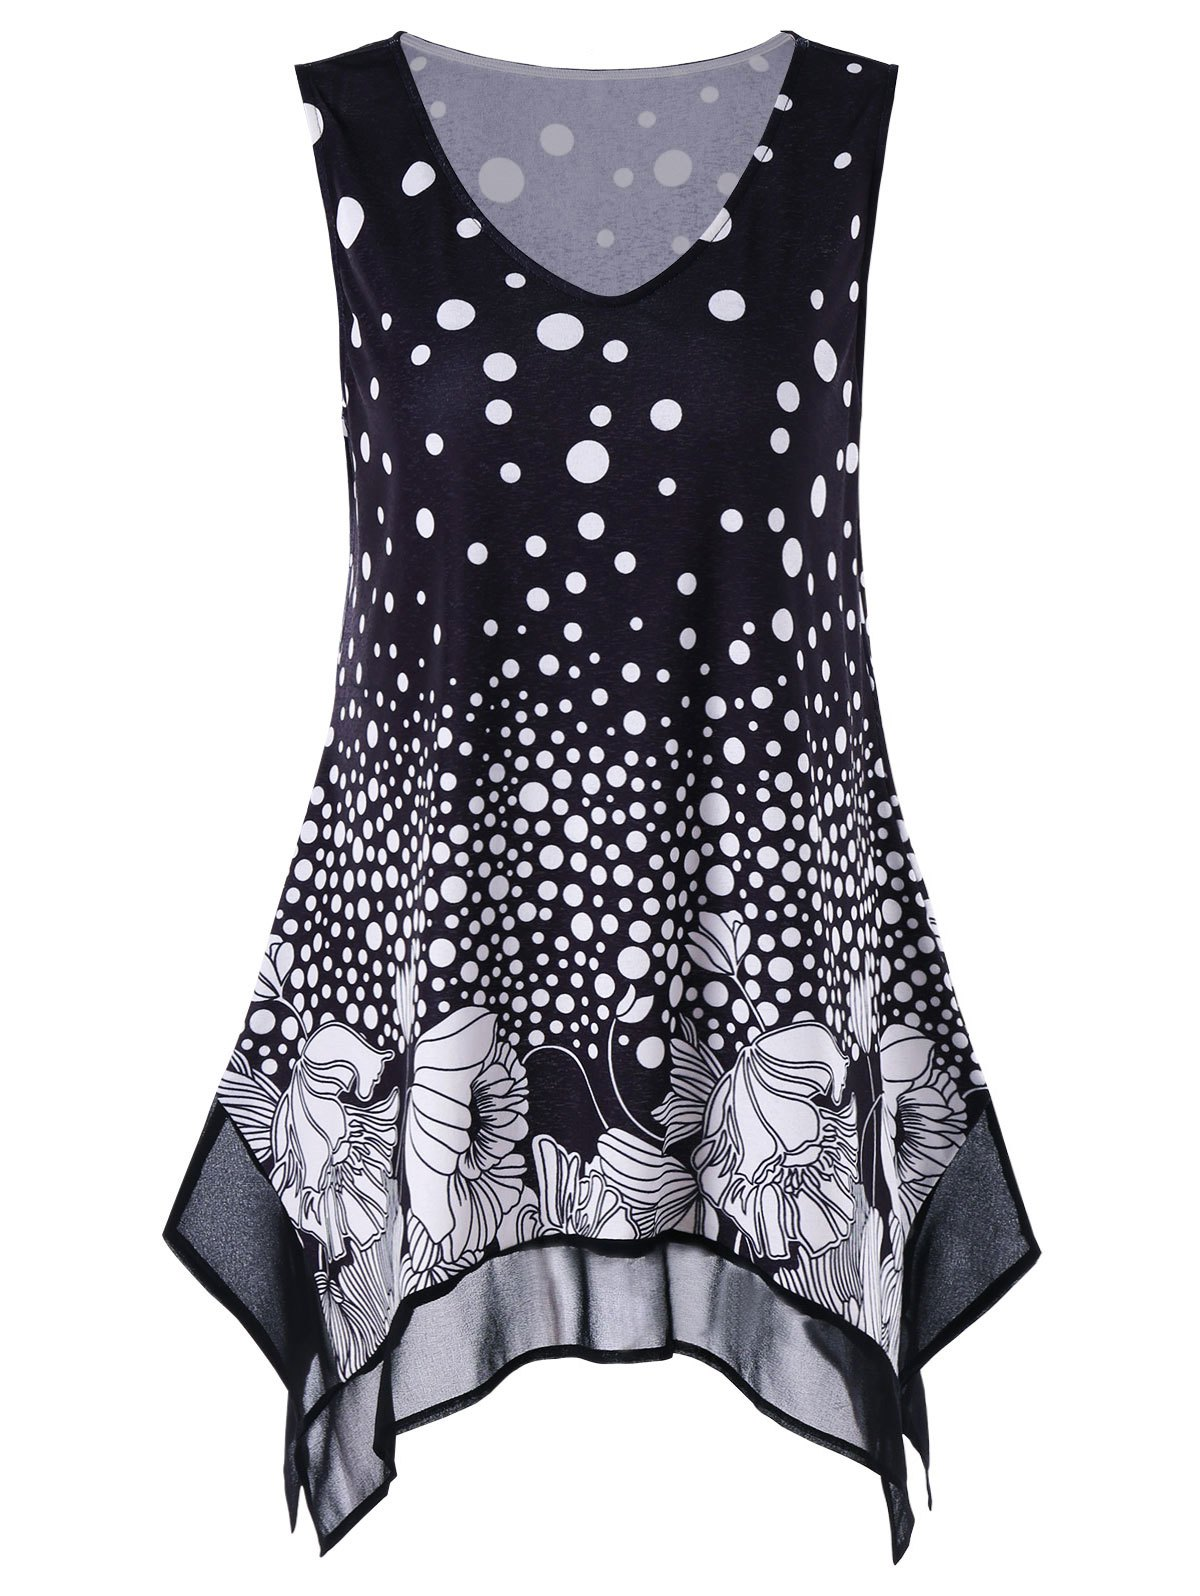 Plus Size Polka Dot Floral Tunic Tank Top plus size polka dot button tank top